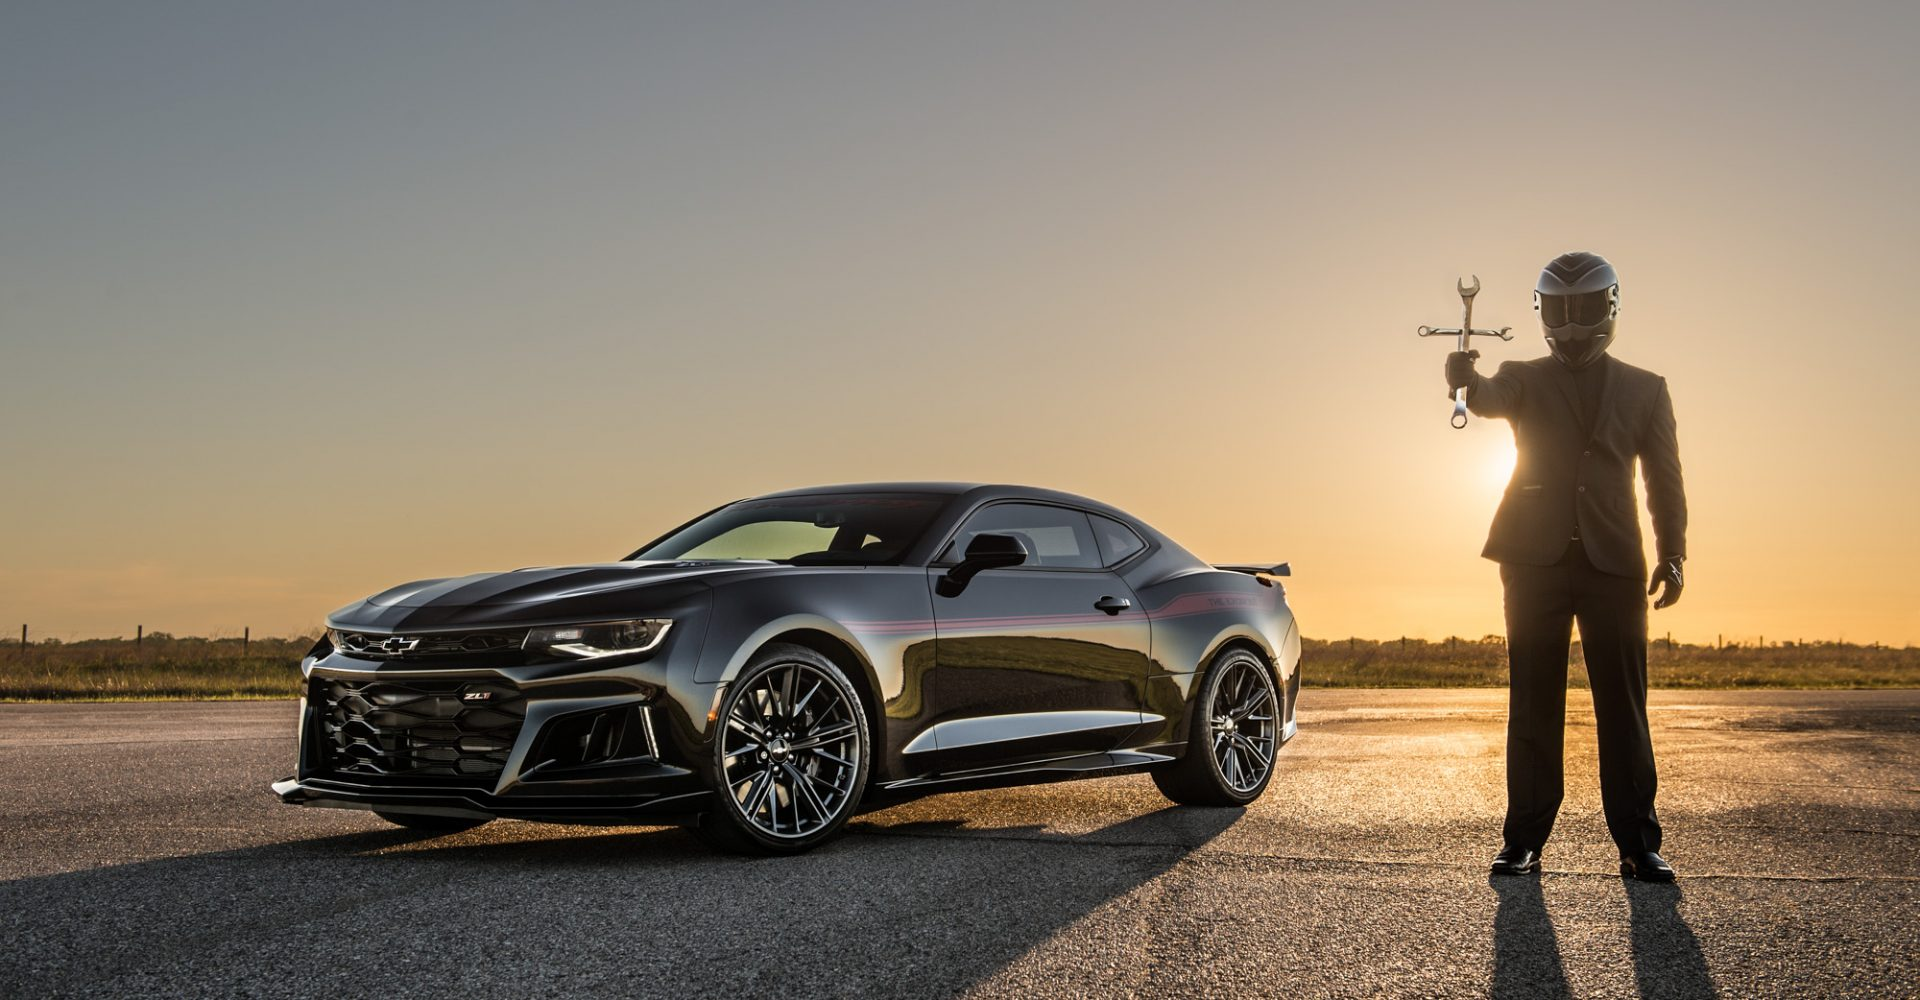 Hennessey Releases Demon-Bashing Camaro Named 'The Exorcist'